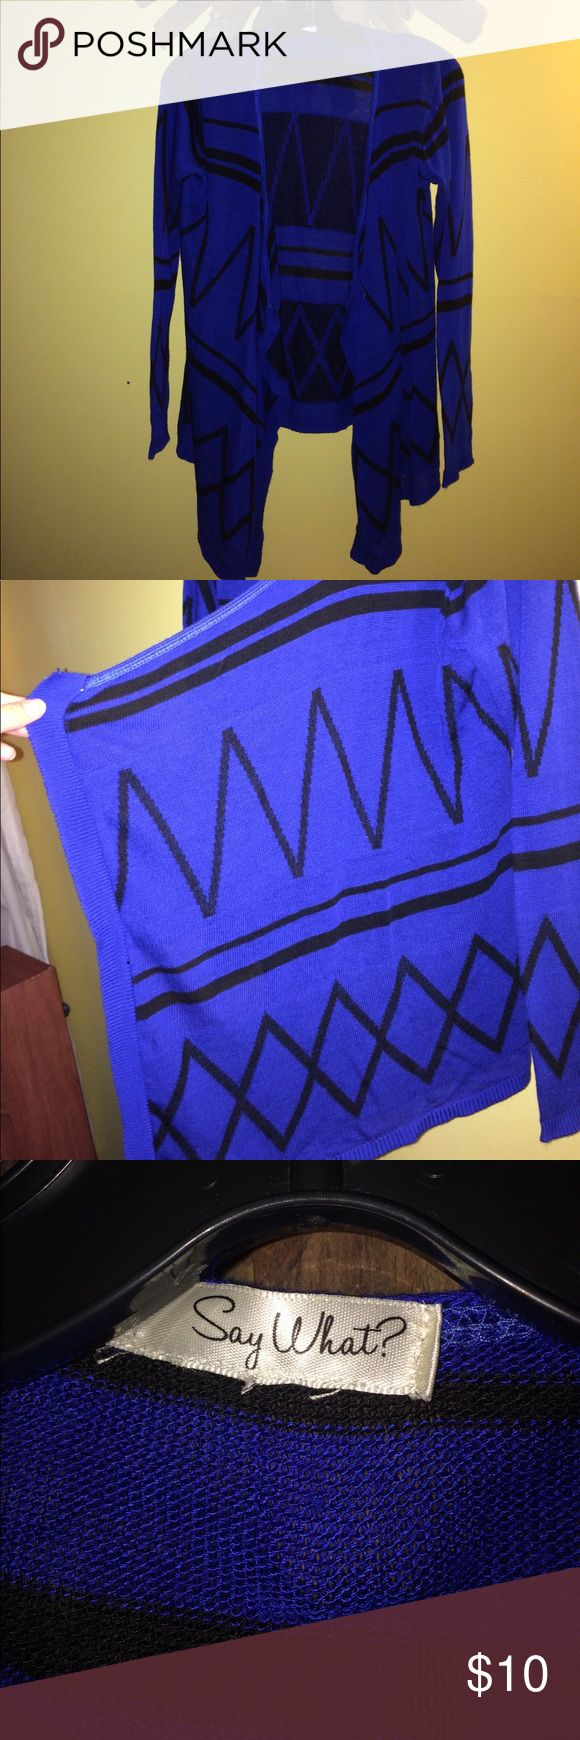 Blue duster sweater Royal blue with black geometric design. Cute and comfy. Lightweight and great for cool spring nights by the fire! Excellent condition. Say What? Sweaters